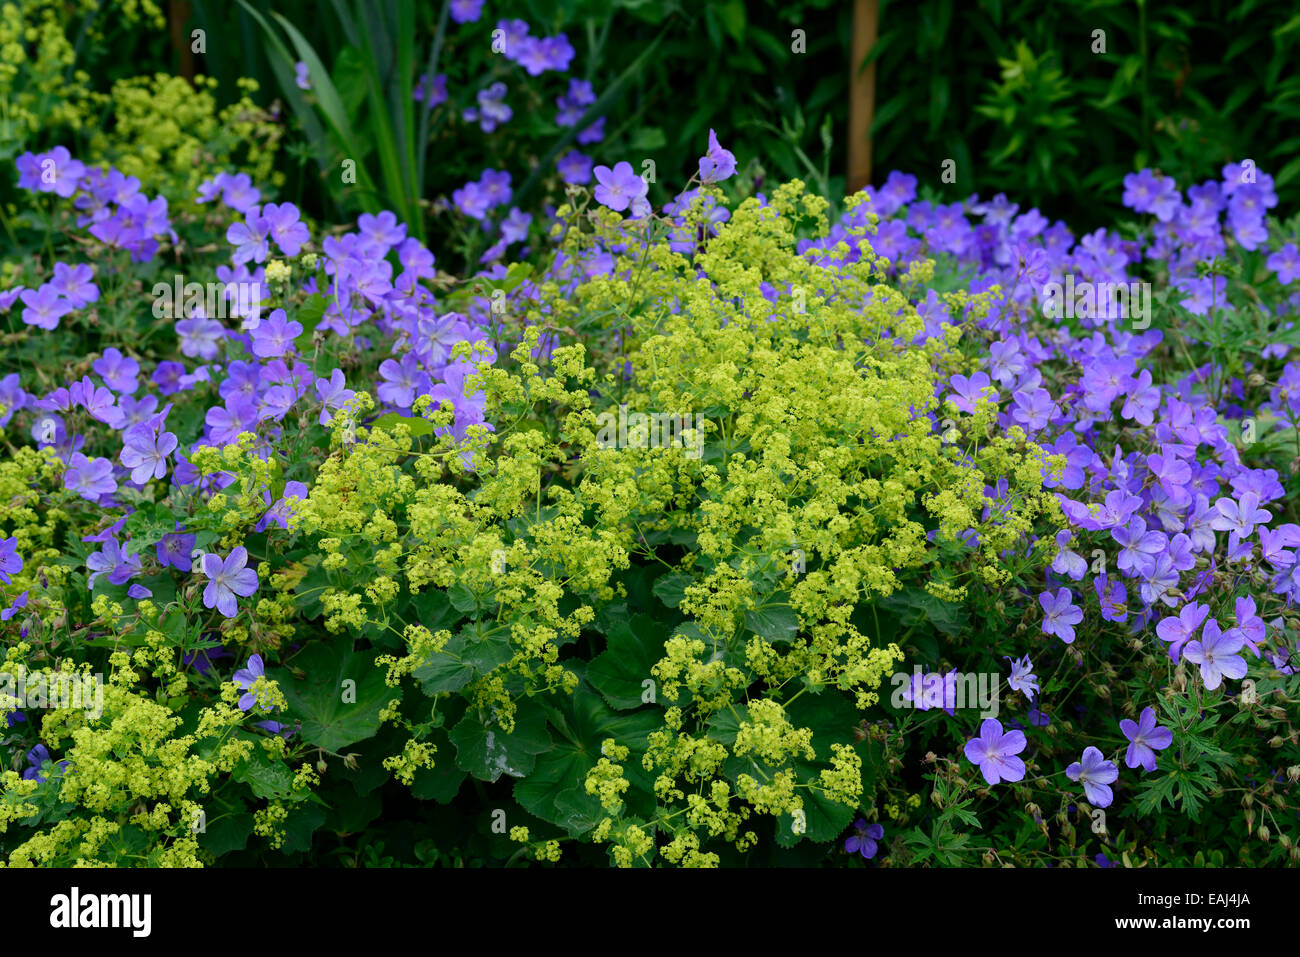 Alchemilla mollis geranium johnsons blue yellow blue flowers flower alchemilla mollis geranium johnsons blue yellow blue flowers flower combination mix mixed planting scheme garden rm floral mightylinksfo